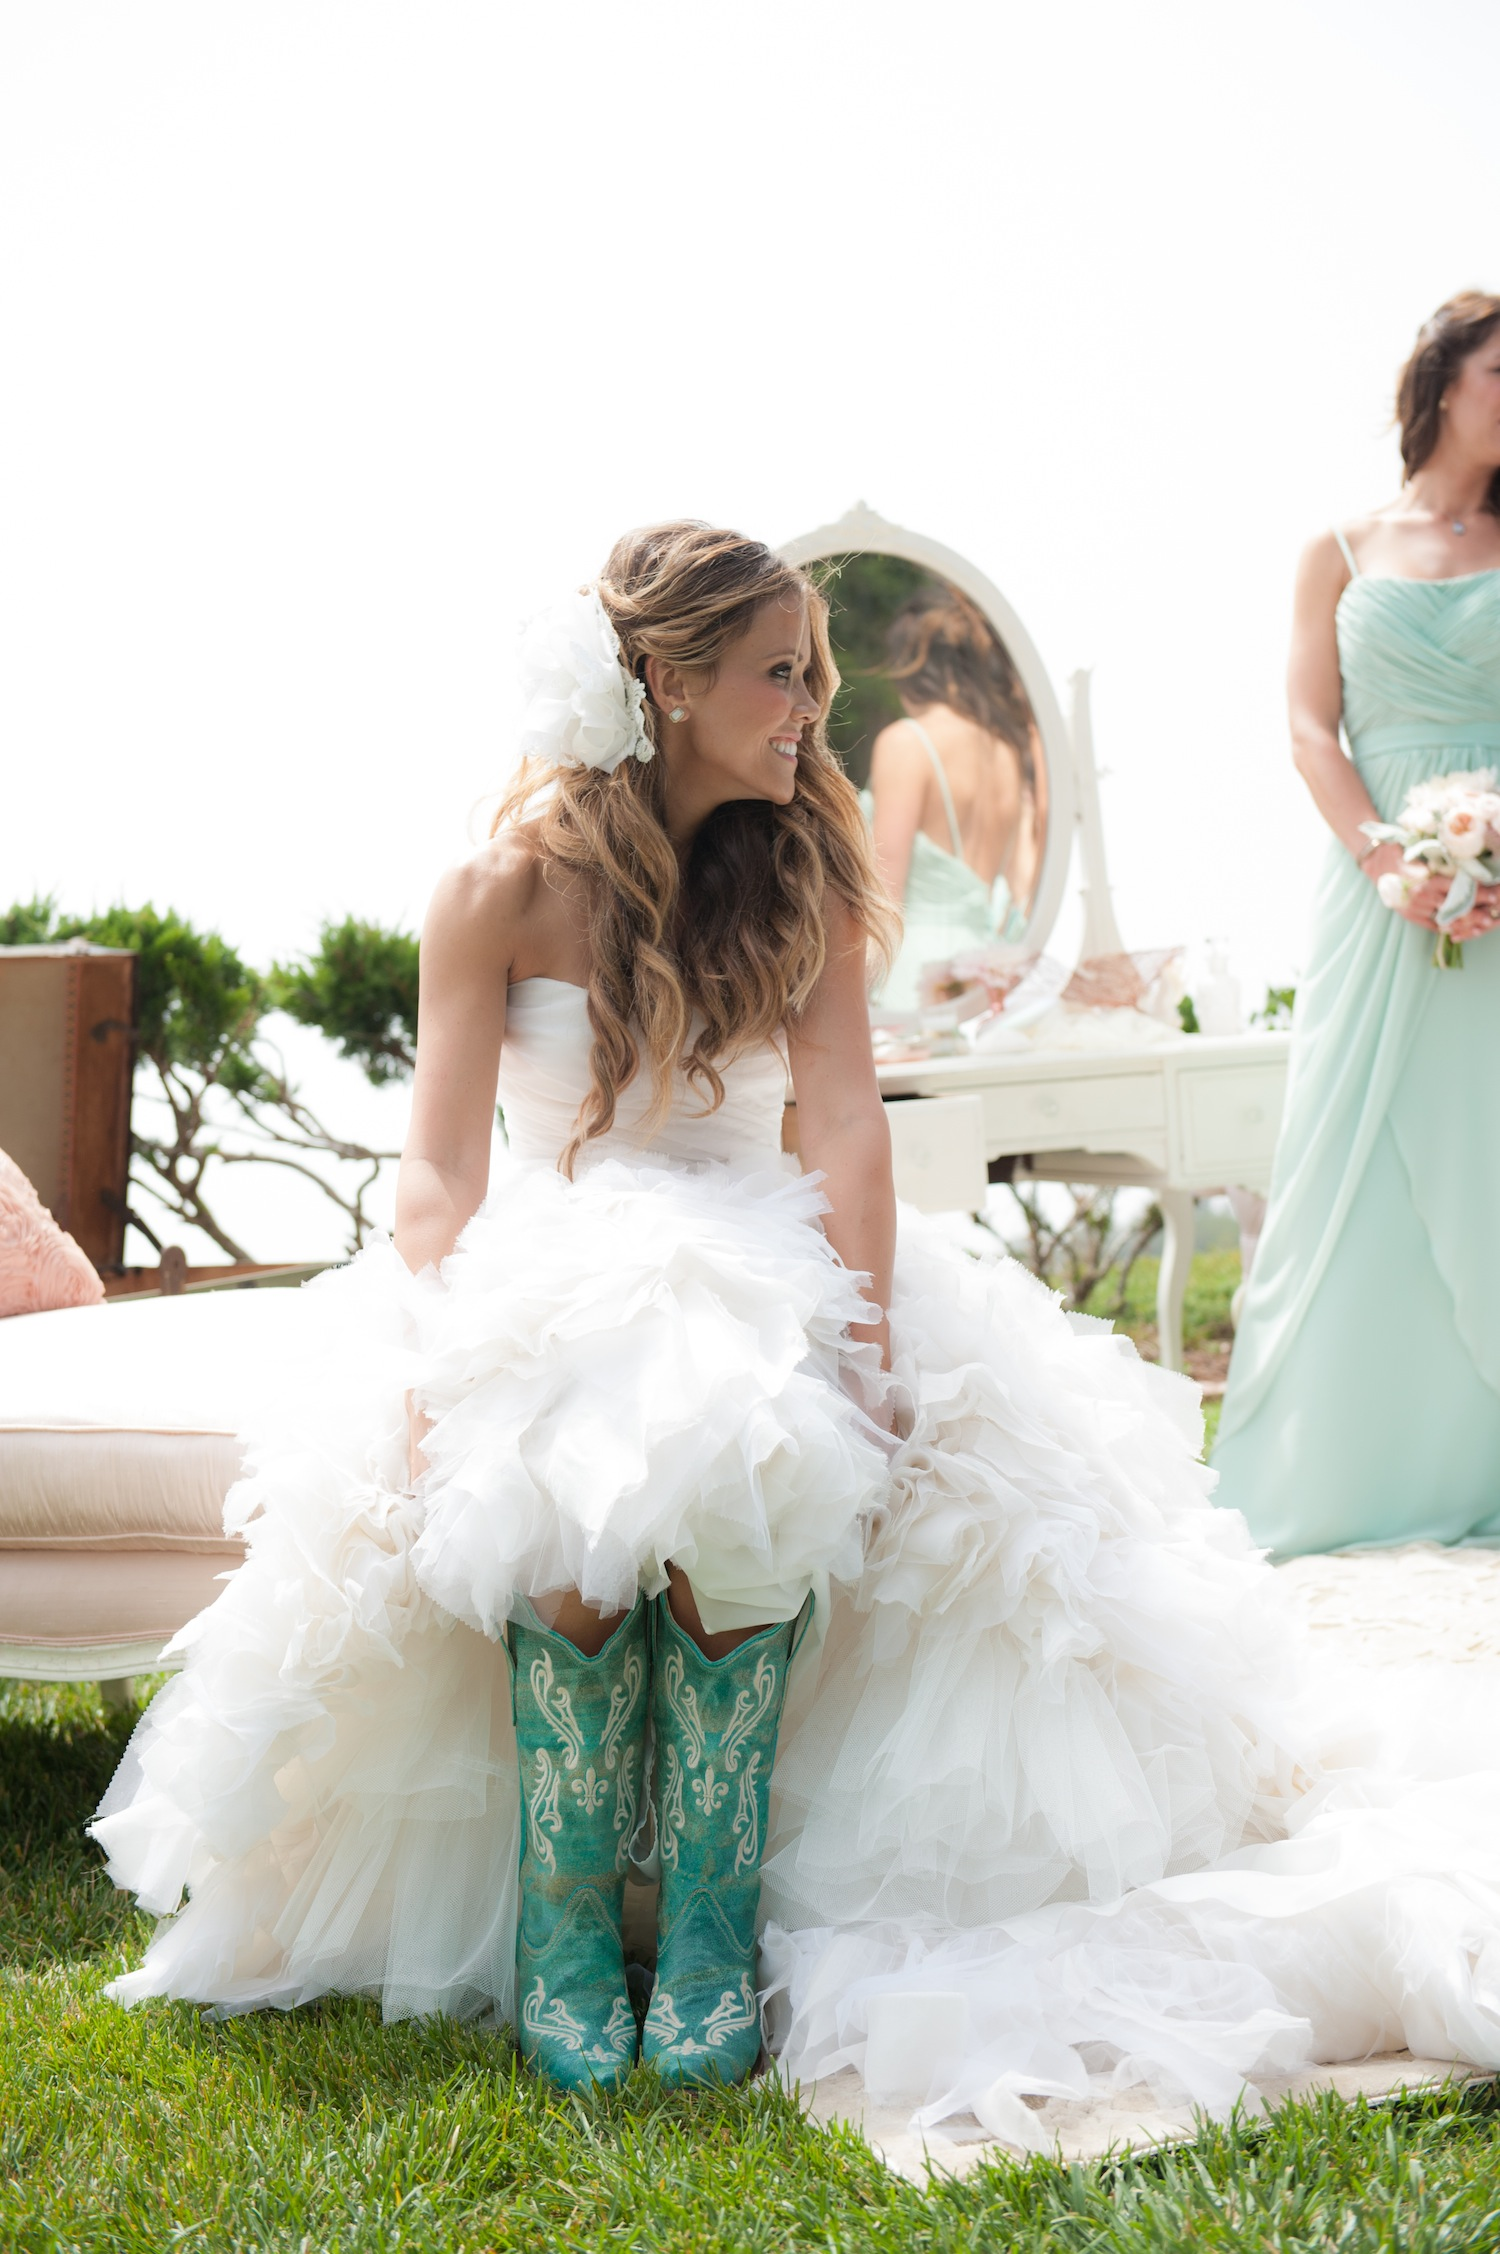 Cowgirl Boot Styles for Your Wedding Day